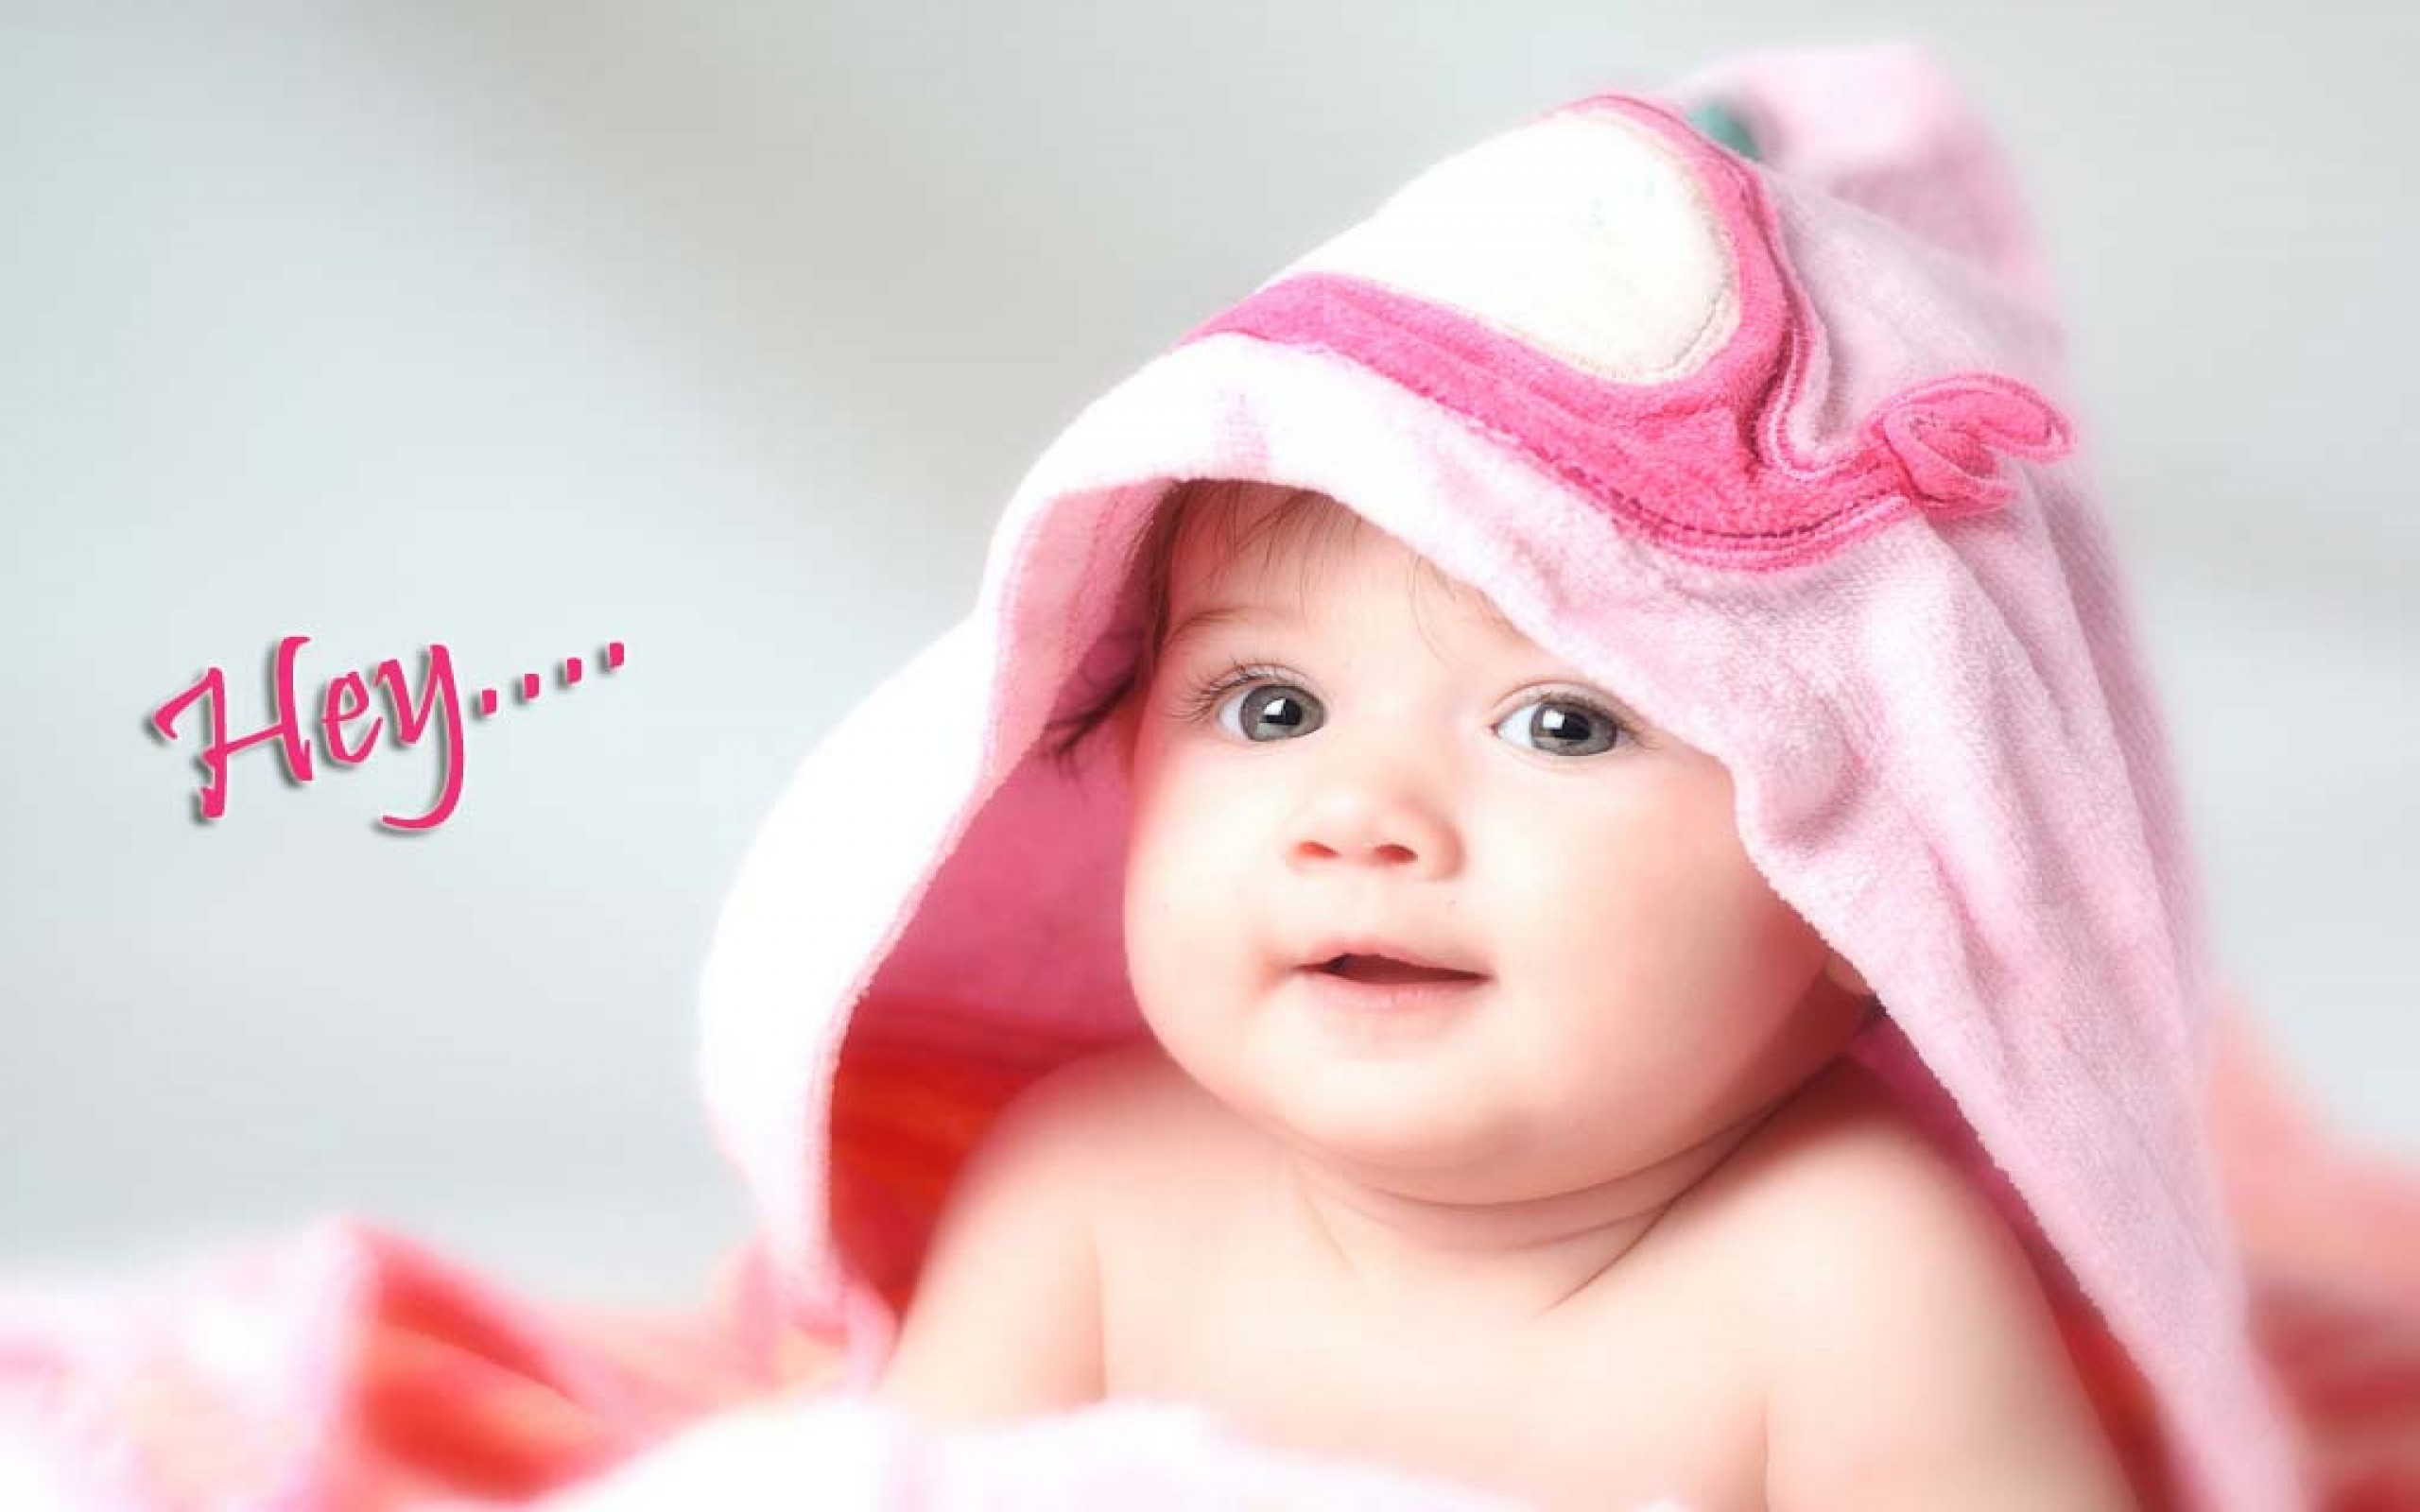 Baby Name in Hindi, name meaning in hindi baby name in hindi baby names in hindi baby girl names in hindi baby boy names in hindi hindi name boy name in hindi meaning of names in hindi hindi baby name hindi names hindu baby name in hindi name of baby girl in hindi indian baby names in hindi language indian baby girl names in hindi child name in hindi baby name girl in hindi hindu baby names in hindi language name in hindi hindi baby names baby names girl in hindi name of girl in hindi names meaning in hindi baby girl name in hindi with meaning indian baby names in hindi meaning of baby names in hindi child name boy in hindi nicknames for girls in hindi hindu baby boy names in hindi language baby hindi name girl names in hindi name of baby in hindi girl baby names in hindi hindu baby girl names in hindi with meaning baby name in hindi language baby name list in hindi baby names with meaning in hindi boy names in hindi hindi naam child name hindi hindi baby indian hindu baby girl name in hindi boy name list in hindi indian baby name in hindi language name of girls in hindi name hindi hindu baby names in hindi hindi name meaning indian baby name in hindi baby name in hindi with meaning what is the meaning of my name in hindi baby names boy in hindi boy baby names in hindi baby girl name in hindi language hindi child name beby name hindi baby name hindi new baby name in hindi meaning of name in hindi babies names in hindi babies name in hindi hindi name list name of boy in hindi baby name hindi me beby name in hindi name of baby boy in hindi baby girl names with meaning in hindi hindu baby boy names with meaning in hindi hindu baby name in hindi language name meanings in hindi child name girl in hindi names for girls in hindi baby names hindi indian baby girl names with meaning in hindi girls names in hindi indian baby boy names in hindi language hindu baby name list in hindi name of child in hindi hindu girl baby names in hindi children names in hindi baby boy names with meaning in hindi hindu baby boy names in hindi name in hindi meaning new born baby names in hindi hindu girl names in hindi name of meaning in hindi hindu baby girl names in hindi name list in hindi hindu name in hindi kids name in hindi baby girl names hindi child name list in hindi girl hindi child names in hindi meaning of hindi names hindi baby girl names name meaning hindi girl child names in hindi girl name list in hindi names for girls with meaning names in hindi language bachpan names indian hindu baby girl names in hindi meaning of names in hindi dictionary girl baby name in hindi baby name in hindi boy list baby names in hindi language new name list of boy in hindi girl name in hindi language baby name boy in hindi meaning of hindi names in english indian baby girl name in hindi language baby names in hindi for girl my name meaning in hindi muslim girl names with meaning in hindi boys name in hindi hindu baby boy names in hindi pdf name dictionary in hindi hindi meaning of name boys names in hindi bachpan.com in hindi indian girls name in hindi find name meaning in hindi name of baby girl in hindi language hindu baby girl names with meaning in hindi hindu baby names with meaning in hindi hindi name of baby childs name in hindi baby girl nicknames in hindi boy name in hindi with meaning baby name meaning in hindi children name in hindi hindi baby boy names with meaning girl baby name in hindi language name of hindi baby names list in hindi baby boy name in hindi with meaning hindu boy name in hindi girl name in hindi list hindu baby girl names in hindi language child name with meaning alphabet name list in hindi child hindi name meaning of hindu names in hindi baby girl names with meanings in hindi name of girl in hindi language indian baby girl names in hindi language newborn baby names in hindi baby girl names in hindi with meaning names for boys in hindi indian hindu baby girl names modern with meaning in hindi baby names in hindi with meaning child name in hindi language child baby names in hindi boy name in hindi word hindi naam list baby girl names indian hindu modern in hindi girl child name list in hindi name of newborn baby boy in hindi hindi name with meaning name in hindi language new born baby name in hindi language baby boy names hindu in hindi name list of baby boy in hindi indian baby boy names in hindi boys name hindi baby name list in hindi language baby name in hindi girl baby names girl in hindi language hindi names meaning baby girl name list in hindi names in hindi meaning of my name in hindi baby boy names in hindi with meaning indian boys name list in hindi boy name in hindi language baby name in hindi alphabet meaning of indian names in hindi hindu baby boy name list in hindi name list for boys in hindi girls name list in hindi hindi baby name list born baby name list in hindi name of child boy in hindi name list hindi boy hindi name baby name in hindi boy baby boy name in hindi language names for girls hindi baby girl names indian in hindi baby naam in hindi a word name list in hindi name hindi meaning name list of baby girl in hindi indian name meanings hindu baby boy names in hindi with meaning indian girls name list in hindi bachpan baby names girls hindi hindi girls indian baby girl names in hindi language with meaning a name list in hindi baby name hindi language hindi names with meaning hindi baby name girl child name in hindi for boy list hindu name meaning in hindi hindi name dictionary hindi girl baby names girl name hindi hindi meanings nickname meaning in hindi baby girl names hindi list meanings in hindi hindu girl name list in hindi meanings of indian names girl name in hindi with meaning newborn baby boy names in hindi boy names in hindi alphabet baby names girl with meaning name in hindi for girl beby name hindi me name dictionary in hindi with meaning name meaning dictionary in hindi hindu baby boy name in hindi with meaning name means in hindi baby boy name list in hindi hindu girls names with meaning new born baby names in hindi of boy hindi baby name with meaning muslim girl name meaning in hindi bachpan.com name for baby boy in hindi hindi names from a child name in hindu for boy list in hindi baby names girl hindi girls baby name in hindi name of mining in hindi hindi girl baby name muslim girl names with meaning in hindi pdf baby girl name in hindi alphabet indian name meaning in hindi hindu boy name list in hindi baby names hindu boy in hindi with meaning hindu baby girl names in hindi pdf name of baby boy in hindi language indian baby girl name in hindi baby name list hindi hindu girl name in hindi mining of name in hindi hindu child names with meaning bachpan.com baby girl names baby girl name hindi me name meaning in hindi language baby meaning in hindi indian baby name list in hindi indian hindi name hindi girl names with meaning baby's name in hindi hindi babies name new born baby name list in hindi bachpan hindu baby boy name in hindi hindu name meanings indian name meaning dictionary hindi name meanings hindu child name list in hindi indian name in hindi name hindi me baby nicknames in hindi hindi new name nicknames in hindi indian babies name in hindi child name in hindi girl name of meaning hindi bachpan .com girl names hindi list hindu name meaning dictionary names hindi hindi name girls bachpan name meaning hindi me name new name for boy in hindi boy child name list in hindi hindi names for babies hindu name dictionary name english to hindi cute names for girls in hindi meaning of hindi name hindi names dictionary girls hindi names new name for girl in hindi indian name dictionary cute baby names in hindi muslim baby girl names in hindi with meaning new born child name in hindi name of girl child with meaning meanings of names hindu meaning in hindi hindi boy baby name list in hindi pdf in the name of meaning in hindi means of name in hindi nick name meaning in hindi www.bachpan.com baby hindi muslim girl name with meaning in hindi new name of baby boy in hindi different names with meaning child name in hindi for boy name dictionary hindi hindi me baby ka name girls meaning in hindi india meaning in hindi baby girl names in hindi list bachpan.com baby names names of boys in hindi hindi name meaning in hindi cute baby meaning in hindi indian names for girls meanings baby name dictionary in hindi baby names in hindi alphabet dictionary of names in hindi good hindi names hindi name meaning dictionary what is meaning of my name in hindi indian baby name dictionary first name means in hindi indian girls names and meanings new baby name list in hindi name meaning indian infant meaning in hindi meaningful meaning in hindi child name dictionary what is my name meaning in hindi nickname for girls in hindi hindi names list new name for baby boy in hindi indian names in hindi girl hindi name naam ka meaning bachpan baby girl names hindi w baby name meaning dictionary infant means in hindi toddler meaning in hindi bachpan baby boy names child in hindi baby means in hindi bachpan.com baby boy names meaning of hindu names dictionary indian baby names for boys in hindi indian name meanings dictionary translate names in hindi get meaning in hindi indian child names with meaning nickname for girl in hindi a in hindi list of hindi names born hindi meaning girl in hindi muslim meaning in hindi rashi name in english and hindi bachapan.com meaning for hindi english to hindi name hindi english name boy name dictionary indian name of baby bachpan .com find hindi meaning baby girl name in english with meaning indian names and their meanings organization name meaning in hindi boy in hindi hindi female names all hindi meaning find meaning in hindi pretty girl meaning in hindi girls name dictionary baby in hindi meaning of indian names dictionary rashi name hindi to english meaning of indian names in english different hindi meaning thier meaning in hindi name of rashi in english and hindi ma meaning in hindi required meaning in hindi eram meaning in hindi their meaning in hindi hindi meaning of their similar meaning in hindi at bay meaning in hindi heena meaning in hindi search meaning in hindi by hindi meaning 100 meaning in hindi bacpan w meaning in hindi mining meaning in hindi bebe meaning in hindi short meaning in hindi nike meaning in hindi com hindi male hindi meaning hindi meaning of india meaning of hindu in hindi nazneen meaning in hindi meaning of kids in hindi of meaning hindi baby names and their meanings childran name list their hindi meaning indian baby name book suggestion hindi meaning idea meaning in hindi aarika meaning in hindi india means in hindi baby girl names in english baby names in english language meaning in hindi little meaning in hindi human meaning in hindi site meaning in hindi all rashi name in hindi and english baby name list meanings a hindi meaning baby name in english with meaning ladies meaning in hindi meaning of different in hindi born meaning hindi meaning of girl chile meaning in hindi kids meaning in hindi concepts meaning in hindi meaning for names in english meaning of names in english top in hindi meaning bay meaning in hindi surname meaning in hindi baby boy names in english with meaning with hindi meaning typical means in hindi little hindi meaning gracia meaning in hindi baby girl name in english baba meaning in hindi what is your name meaning in hindi baby boy names with meaning in english suggest meaning in hindi indian means in hindi hindi meanings of hindi words how to born child in hindi organized meaning in hindi girl baby names in english meaning of fetal in hindi suggestion meaning in hindi male means in hindi bays meaning in hindi typical meaning in hindi search hindi meaning meanings of name meaning of baby required meaning in hindi hindi meanings in hindi words in hindi with meaning india hindi meaning english meaning hindi baby name in english word mining in hindi lady meaning in hindi good hindi meaning with a view to meaning in hindi how to born a baby in hindi for me meaning in hindi how do you meaning in hindi childhood meaning in hindi characters meaning in hindi some meaning in hindi cute meaning in hindi me meaning in hindi nice meaning in hindi proper meaning in hindi how to born baby in hindi how sweet of you meaning in hindi meanings of names in english names meaning in english meaning of find in hindi share meaning in hindi human hindi meaning english meaning in hindi view meaning in hindi male meaning in hindi easy meaning in hindi girls names with meanings nature means in hindi i know meaning in hindi baby boy nicknames in english meaning of guy in hindi in view of meaning in hindi mens meaning in hindi meaning of human names how do i know meaning in hindi hindi words meaning in hindi hindi meaning of infant search baby names by meaning meaning of top in hindi meaningful baby names origin hindi meaning english baby girl names and meanings shares meaning in hindi meaning of toddler in hindi meaning of india in hindi find in hindi some hindi meaning hindi word meaning in hindi what is mining in hindi finding meaning in hindi how mean meaning in hindi baby girl name english how born baby in hindi www.meaning of names english baby names and meanings other means in hindi this is me meaning in hindi regional meaning in hindi all girls names meaning hindi to english india child name meanings of the names plants meaning in hindi book meaning in hindi nice hindi meaning meaning of mining in hindi word meaning hindi to english how cute meaning in hindi english baby names with meaning who mining in hindi meaningful hindi words irish meaning in hindi meaning in hindi to english meaning of childhood in hindi english name of girls pronounce meaning in hindi english meaning for hindi words word meaning in hindi language baby girl names english what mining in hindi search your name hindi and hindi meaning how mining in hindi on words meaning in hindi daughter means in hindi meaning of hindi to english infant hindi meaning list of names and meanings bay means in hindi site means in hindi origin meaning in hindi word meaning in hindi to english disclaimer meaning in hindi gal meaning in hindi search meaning of names meaning of modern in hindi its meaning in hindi what is the meaning of their in hindi mining of hindi i know it meaning in hindi english baby girl names with meaning may be meaning in hindi report meaning in hindi its hindi meaning meaning of suggestion in hindi new in hindi meaning share means in hindi mining hindi words ward off meaning in hindi emotions meaning in hindi their means in hindi meaning of hindi words in hindi my ward meaning in hindi baby name english baya meaning in hindi best hindi meaning field means in hindi english meaning to hindi hindi meaning of typical our meaning in hindi ward meaning in hindi to english name meanings in english places meaning in hindi english to hindi meanings birds name in hindi pdf we have to meaning in hindi meaning of all the best in hindi character meaning in hindi a little meaning in hindi he is meaning in hindi meaning of suggest in hindi search in hindi know meaning in hindi english meaning of hindi words good meaning in hindi you will get meaning in hindi you have meaning in hindi origin means in hindi version meaning in hindi when mining in hindi family origin meaning in hindi mining in hindi to english on hindi meaning x meaning in hindi boy baby names in english we means in hindi english girl names and meanings you are meaning in hindi when will meaning in hindi baba hindi meaning privacy meaning in hindi english meanings in hindi cute means in hindi hindi meaning of english you have to meaning in hindi letters meaning in hindi means meaning in hindi hindi words and their meanings in hindi we will meaning in hindi required hindi meaning name meaning search know meaning hindi what is the meaning of hindi word with hindi hindi and english meaning good meaning in hindi meaning of typical in hindi how could i know meaning in hindi birth of hindi language violation meaning in hindi different in hindi all birds name in hindi and english policy meaning in hindi kid meaning in hindi word meaning in hindi to hindi hindi meaning of required meaning of their in hindi girl names in english ward meaning hindi to english meaning of minor in hindi what is the meaning in hindi to english meaning of infant in hindi my meaning in hindi animals meaning in hindi word meaning hindi to hindi meaning to hindi to english word meaning in hindi cuite meaning in hindi word meanings in hindi personal meaning in hindi choose meaning in hindi hindi words meaning in english all of you meaning in hindi girls name in english reserved meaning in hindi find hindi meaning of some in hindi families meaning in hindi hindi to hindi dictionary meaning meaning of baba in hindi nam in hindi meaning of bay in hindi and you meaning in hindi hindi to hindi meaning of word new words in hindi with meaning meanings of hindi words meaning of hindi words in english english name of baby girl mean meaning in hindi the meaning of the name full on meaning in hindi books meaning in hindi hindi meaning to english mining english to hindi name dictionary meaning share hindi meaning word meanings english to hindi word meaning in english to hindi for mining in hindi in advance meaning in hindi english meaning in hindi dictionary download sweet hindi hindi words and their meanings english name of boys qute meaning in hindi meaning from hindi to english required means in hindi your name in hindi have meaning in hindi search name meanings girl child in hindi other meaning in hindi dictionary of names meanings list of hindi words with english meaning word meaning english to hindi dictionary display meaning in hindi letter means in hindi we can meaning in hindi hindi word meaning list meaning hindi to english words what about you meaning in hindi language hindi to english meanings mining hindi to english word meaning english to hindi list girl names english meaning for hindi words good in hindi meaning nick meaning in hindi english meaning of hindi word search in hindi language how would i know meaning in hindi dictionary hindi to hindi hindi me naam english name for baby girl meaning of nice in hindi you are welcome meaning in hindi close hindi meaning fields meaning in hindi meaning of names dictionary hindi words and meaning in english looking beautiful meaning in hindi welcome meaning in hindi girls names in english other than meaning in hindi dictionary from hindi to english english to hindi word meaning list meaning of idea in hindi meaning of human in hindi copyright meaning in hindi hindi to english meaning list hindi a miscellaneous meaning in hindi word meaning list english to hindi best hindi to hindi dictionary hindi words meanings full meaning in hindi hundi meaning in english english hindi com words in hindi language baby names girl english children hindi english to hindi meaning list baby boy names in english hindi to hindi word meaning english to hindi meaning book than means in hindi full name meanings nice of you meaning in hindi meaning of hindi word in english english name for baby boy hindi meaning of miscellaneous search for hindi more meaning in hindi human rights meaning in hindi english to hindi a english name list for boy hides meaning in hindi short in hindi tools name in hindi and english welcome means in hindi name dictionary in english hindi to english to hindi hindi dictionary hindi to hindi english girls name list will be meaning in hindi english name for girls hindi to hindi dictionary how can i help you meaning in hindi translation hindi to hindi ornamental meaning in hindi be the best version of you meaning in hindi english word meaning in hindi list i know that meaning in hindi how was it meaning in hindi boy names in english all word meaning english to hindi list www.hindi language hindi words and their meanings in english what is the meaning of miscellaneous in hindi how may i assist you meaning in hindi english new words with meaning in hindi when hindi language born colours names in hindi and english english girl baby names word meaning hindi to english list english to hindi meaning dictionary download modern in hindi girls names english hindi word meaning in english finding in hindi english meaning of hindi words list hindi to english meaning girlfriend meaning in english english hindi word meaning list english names for baby girl hindi words and meanings hindi new words with meaning hindi english word meaning list www word meaning english to hindi you welcome meaning in hindi every time meaning in hindi ward meaning in hindi trust meaning in hindi english to hindi hindi dictionary to hindi www hindi to english miscellaneous means in hindi i know means hindi hindi to english word meaning list baya in hindi regional language meaning in hindi names for girls english body parts name in hindi and english pdf hindi children hindi to hindi translation hindi meaning to english meaning translation english baby names girl hindi in hindi language you know that meaning in hindi hindi meaning of beautiful english baby girl names hindi top latest word meaning english to hindi english to hindi and hindi to english www.hindi dictionary english word with hindi meaning list pdf means in hindi english name for girl good to know meaning in hindi email hindi meaning meaning of miscellaneous in hindi english names for girl indian hindi language hindi word meaning in english list hindi-hindi dictionary facebook meaning in hindi top english to hindi dictionary